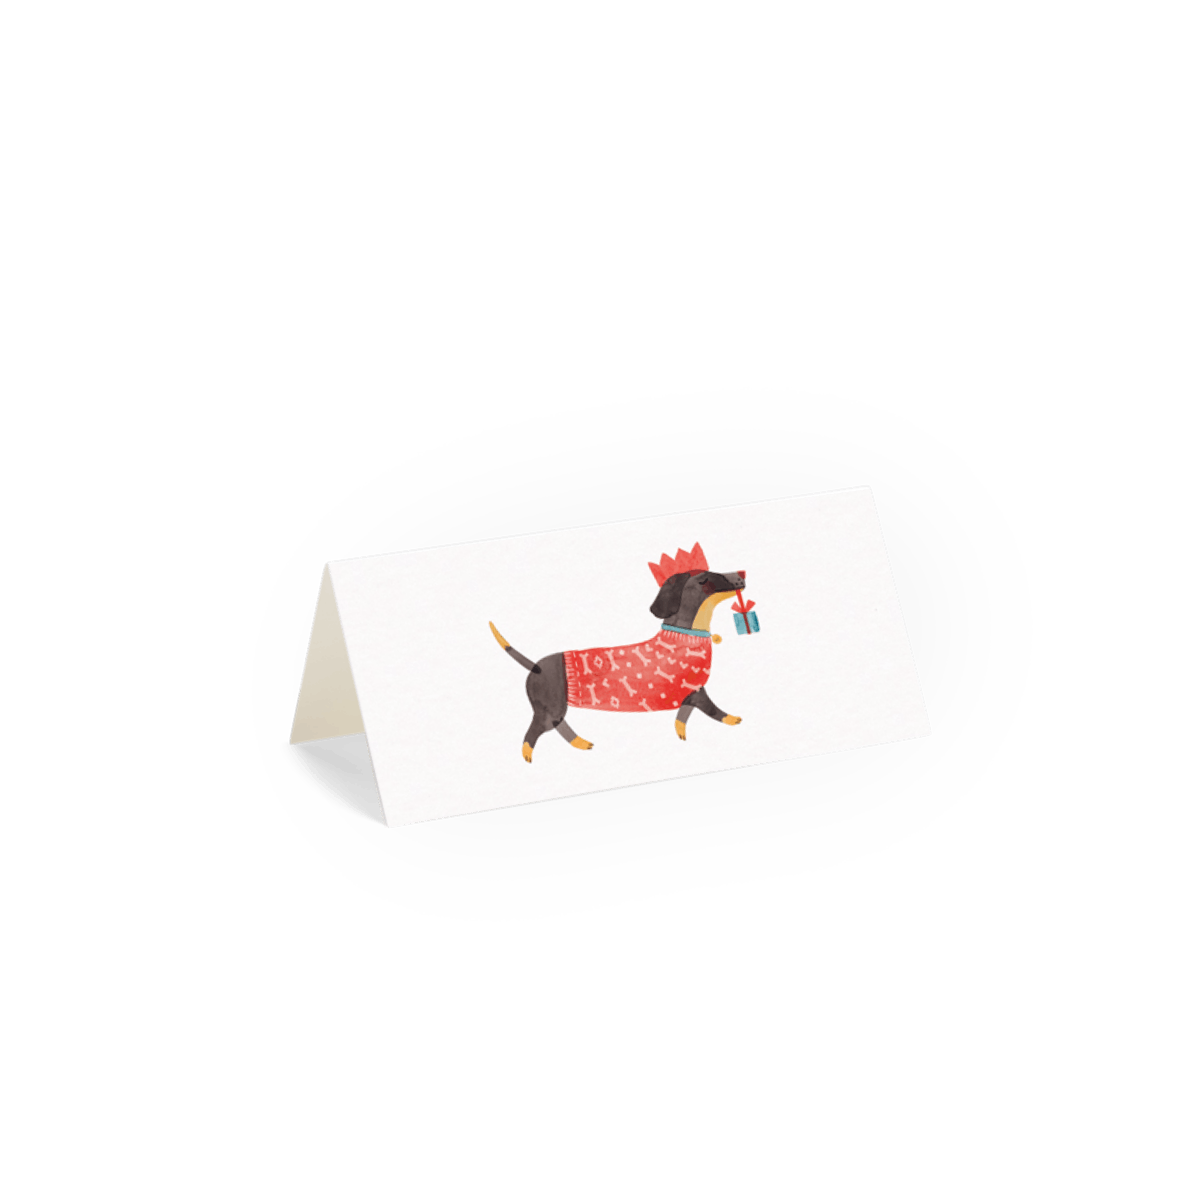 Https%3a%2f%2fwww.papier.com%2fproduct image%2f81726%2f15%2fchristmas dachshund 19665 back 1561991143.png?ixlib=rb 1.1